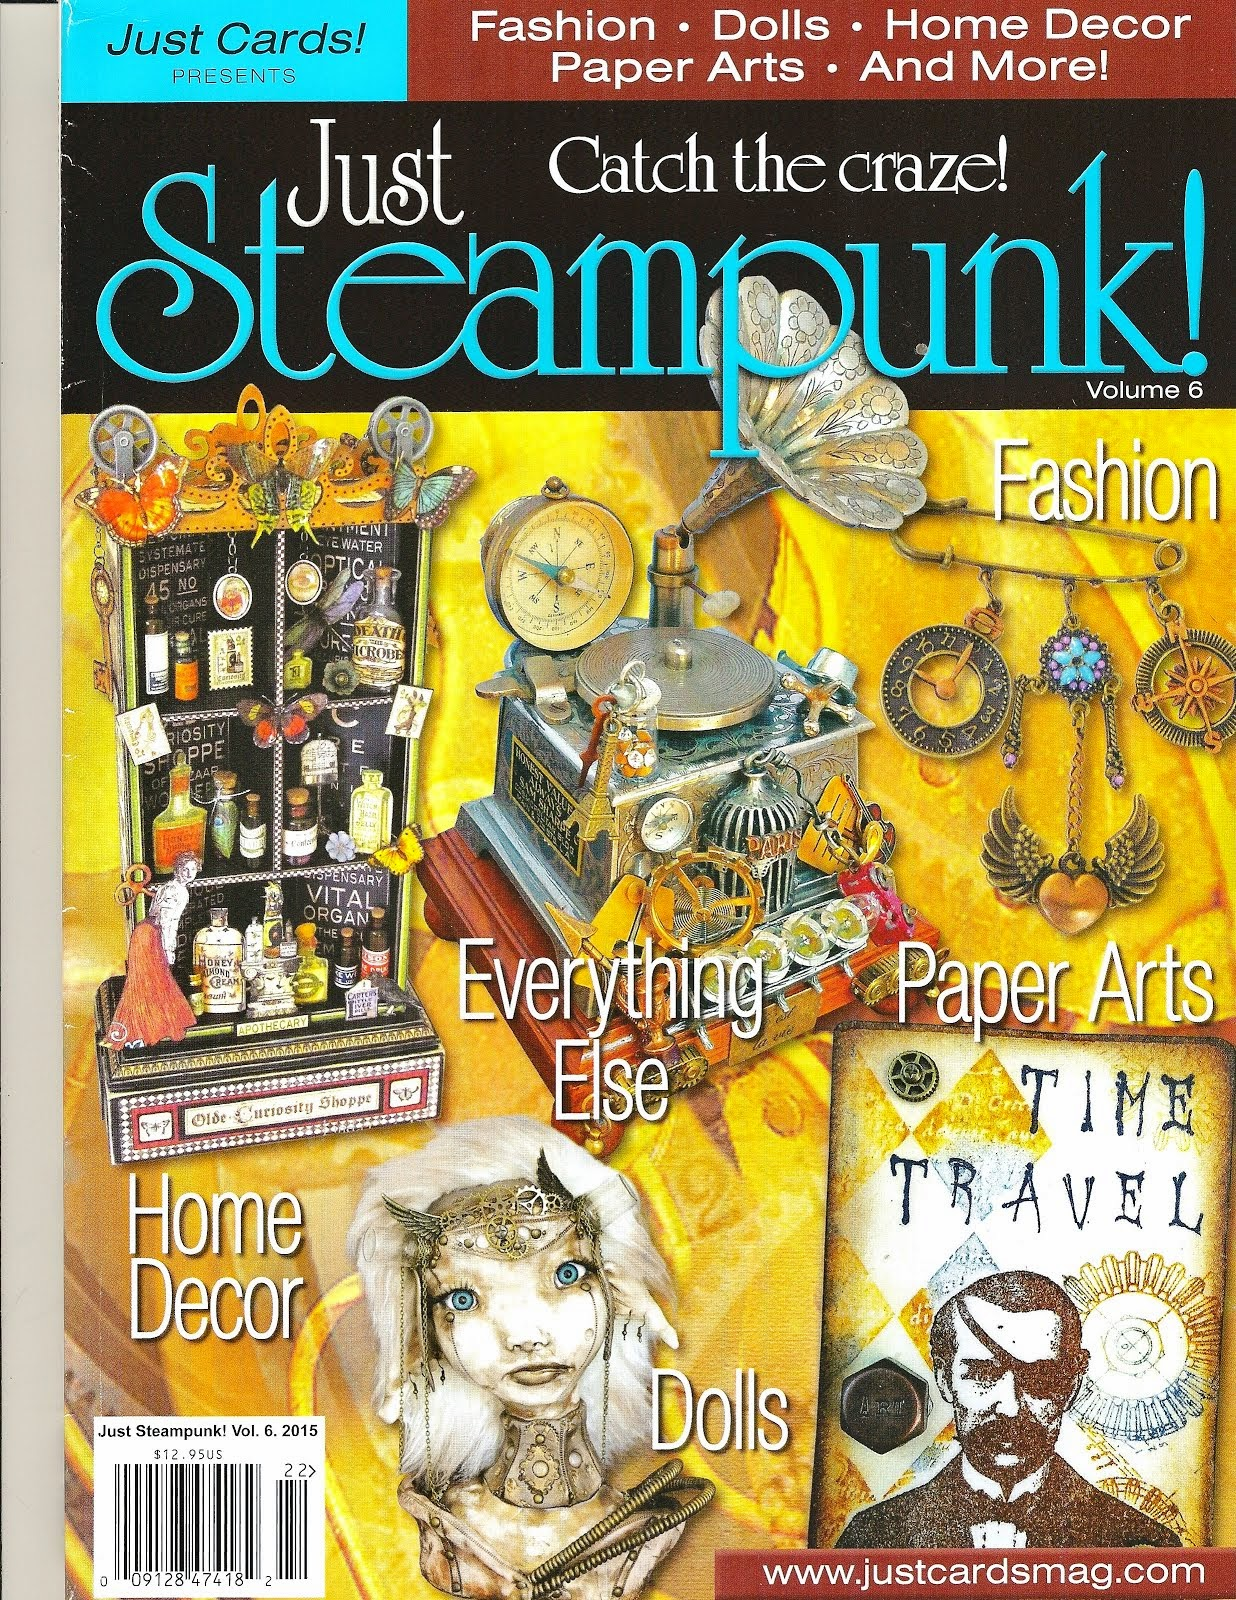 Just Steampunk Magazine Publication